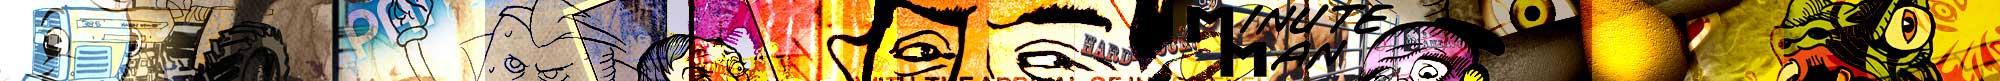 HCK_2018_Banner_cropped